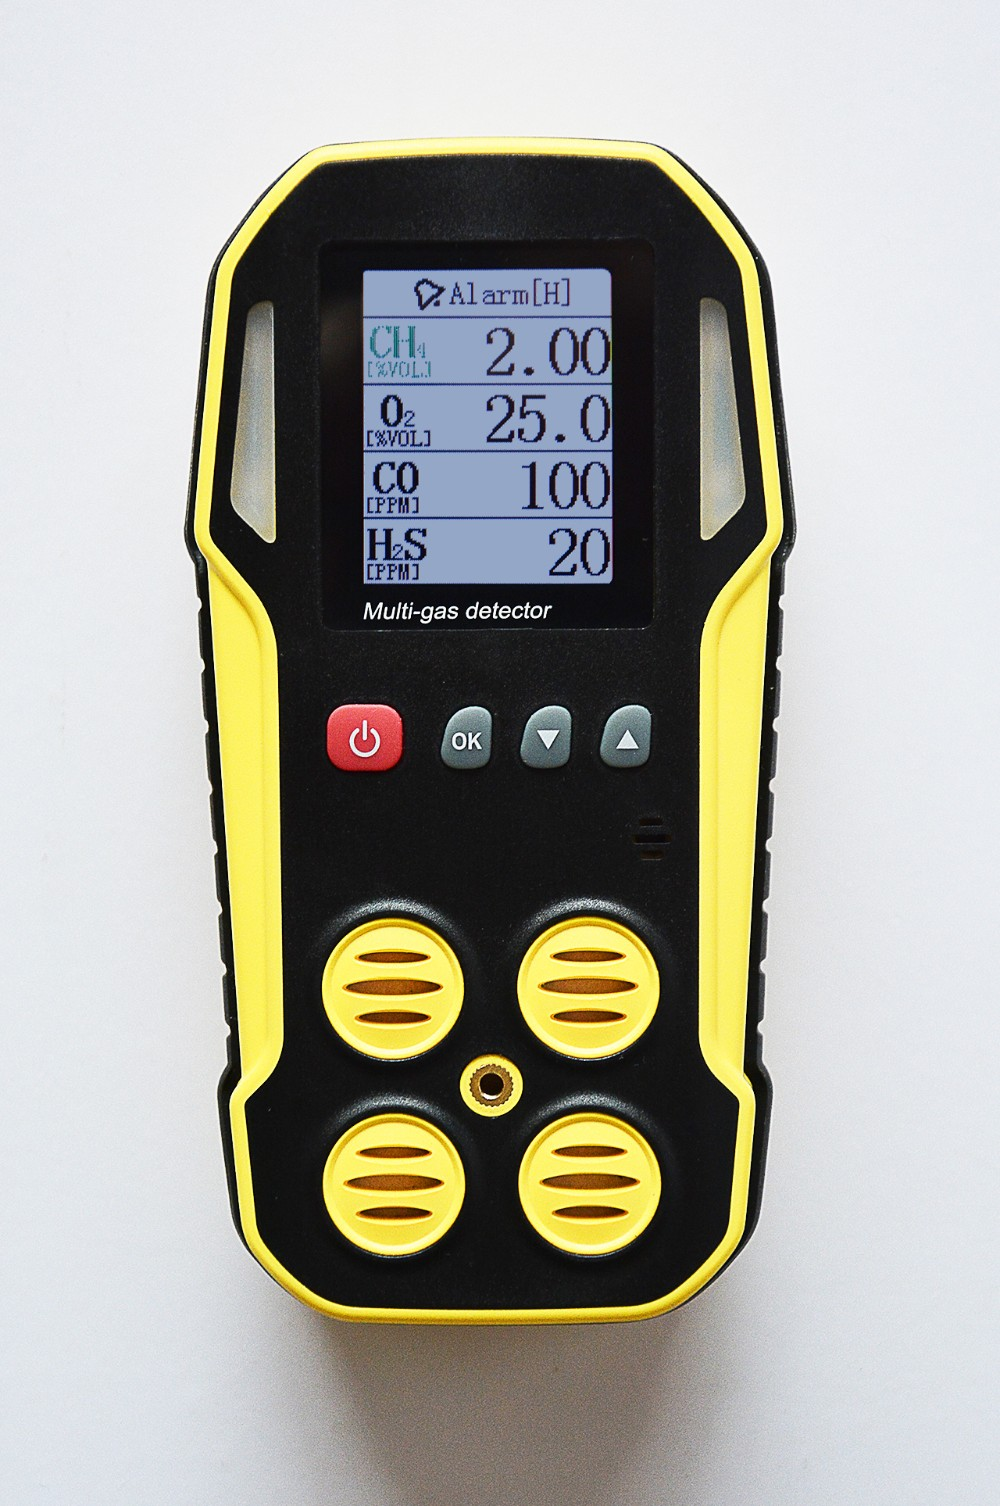 5 Gas Detector,Lel,Co,O2,H2s,Co2 With Ip66/67 Water-proofing